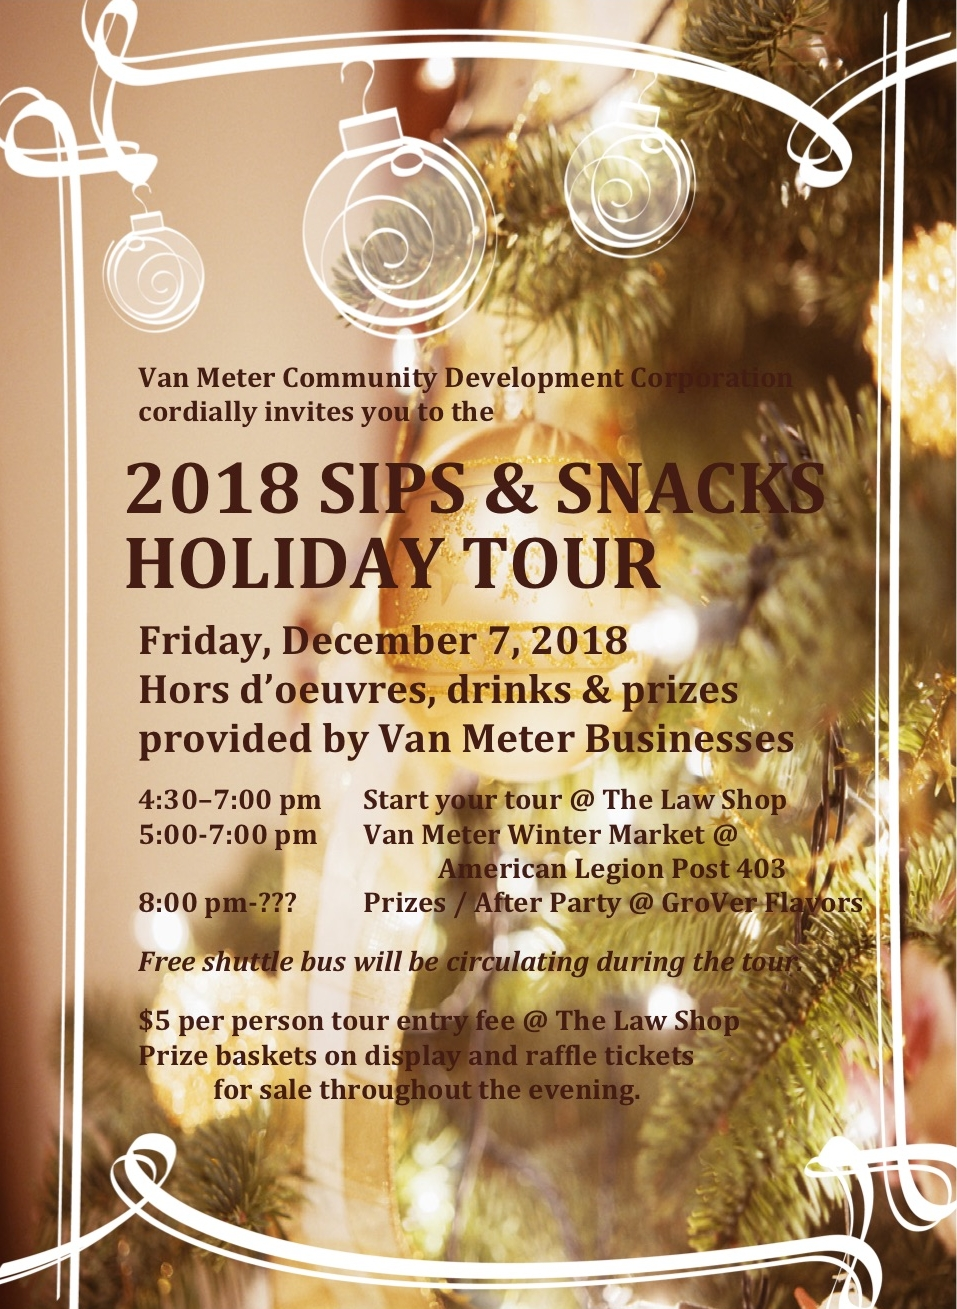 2018Sips & Snacks Holiday Tour - Friday December 7th 2018The Van Meter Community Development has organize a business holiday tour to learn, explore, and meet the local business in town.The tour will start at 4:30-7pm at The Law Shop.There will be a Winter Market at the American Legion Post 403.GroVer Flavors will be hosting the After Party where the prize winners will be announce.There will be a $5 entry free per personRaffle tickets will be available for sale throughout the evening.